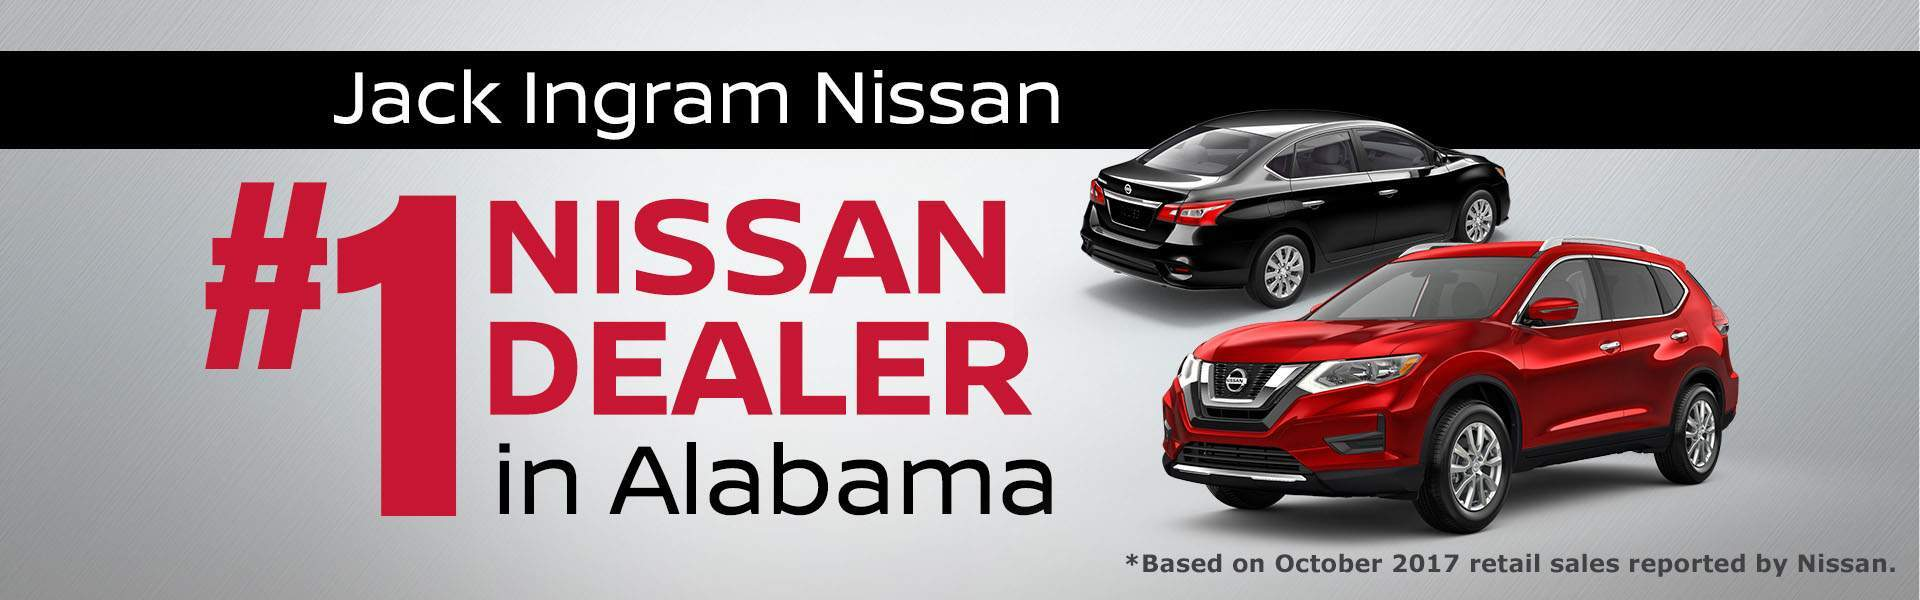 #1 Nissan Dealer in Alabama